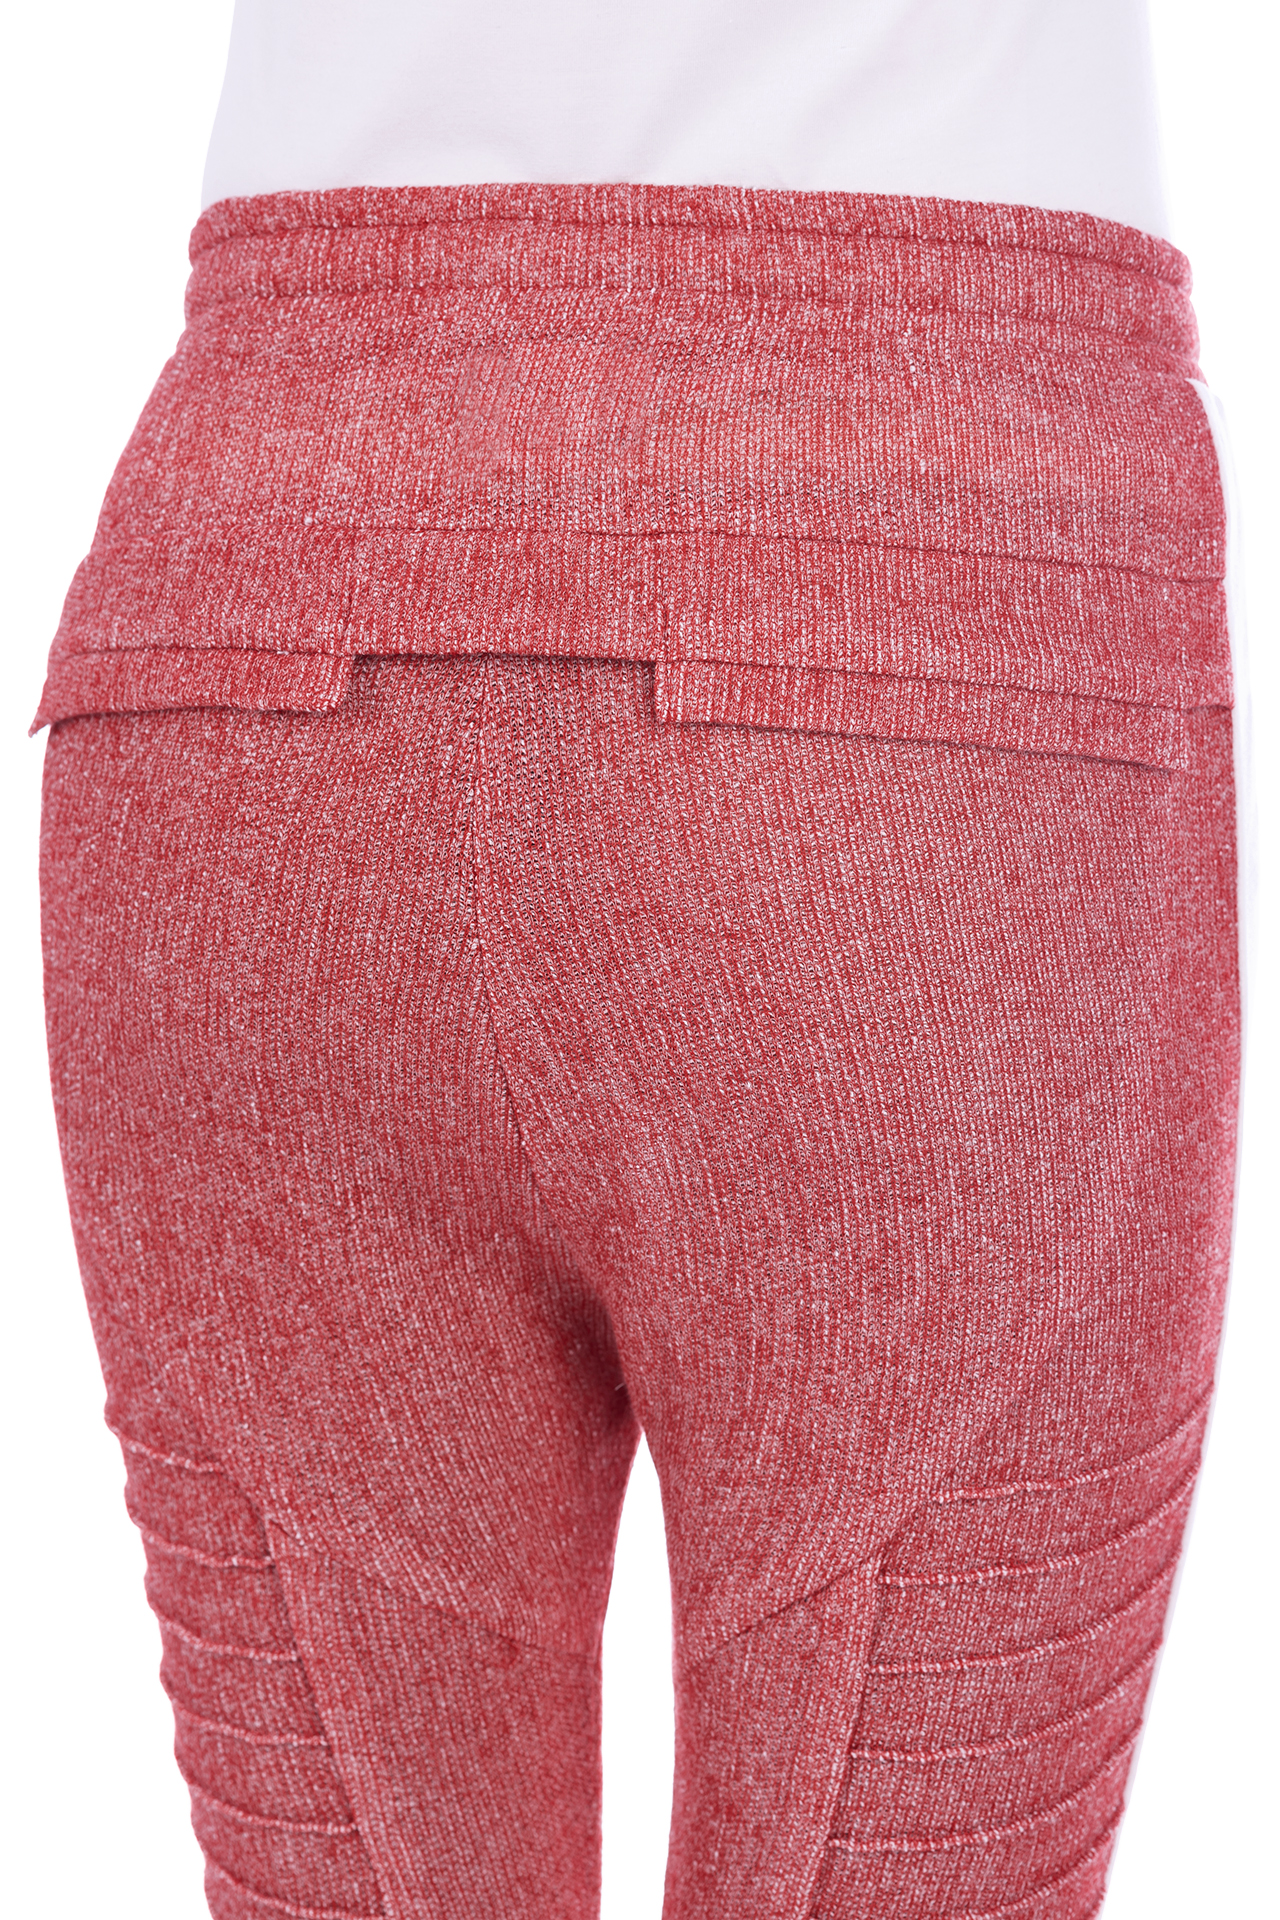 FRENCH TERRY PANT RED 5